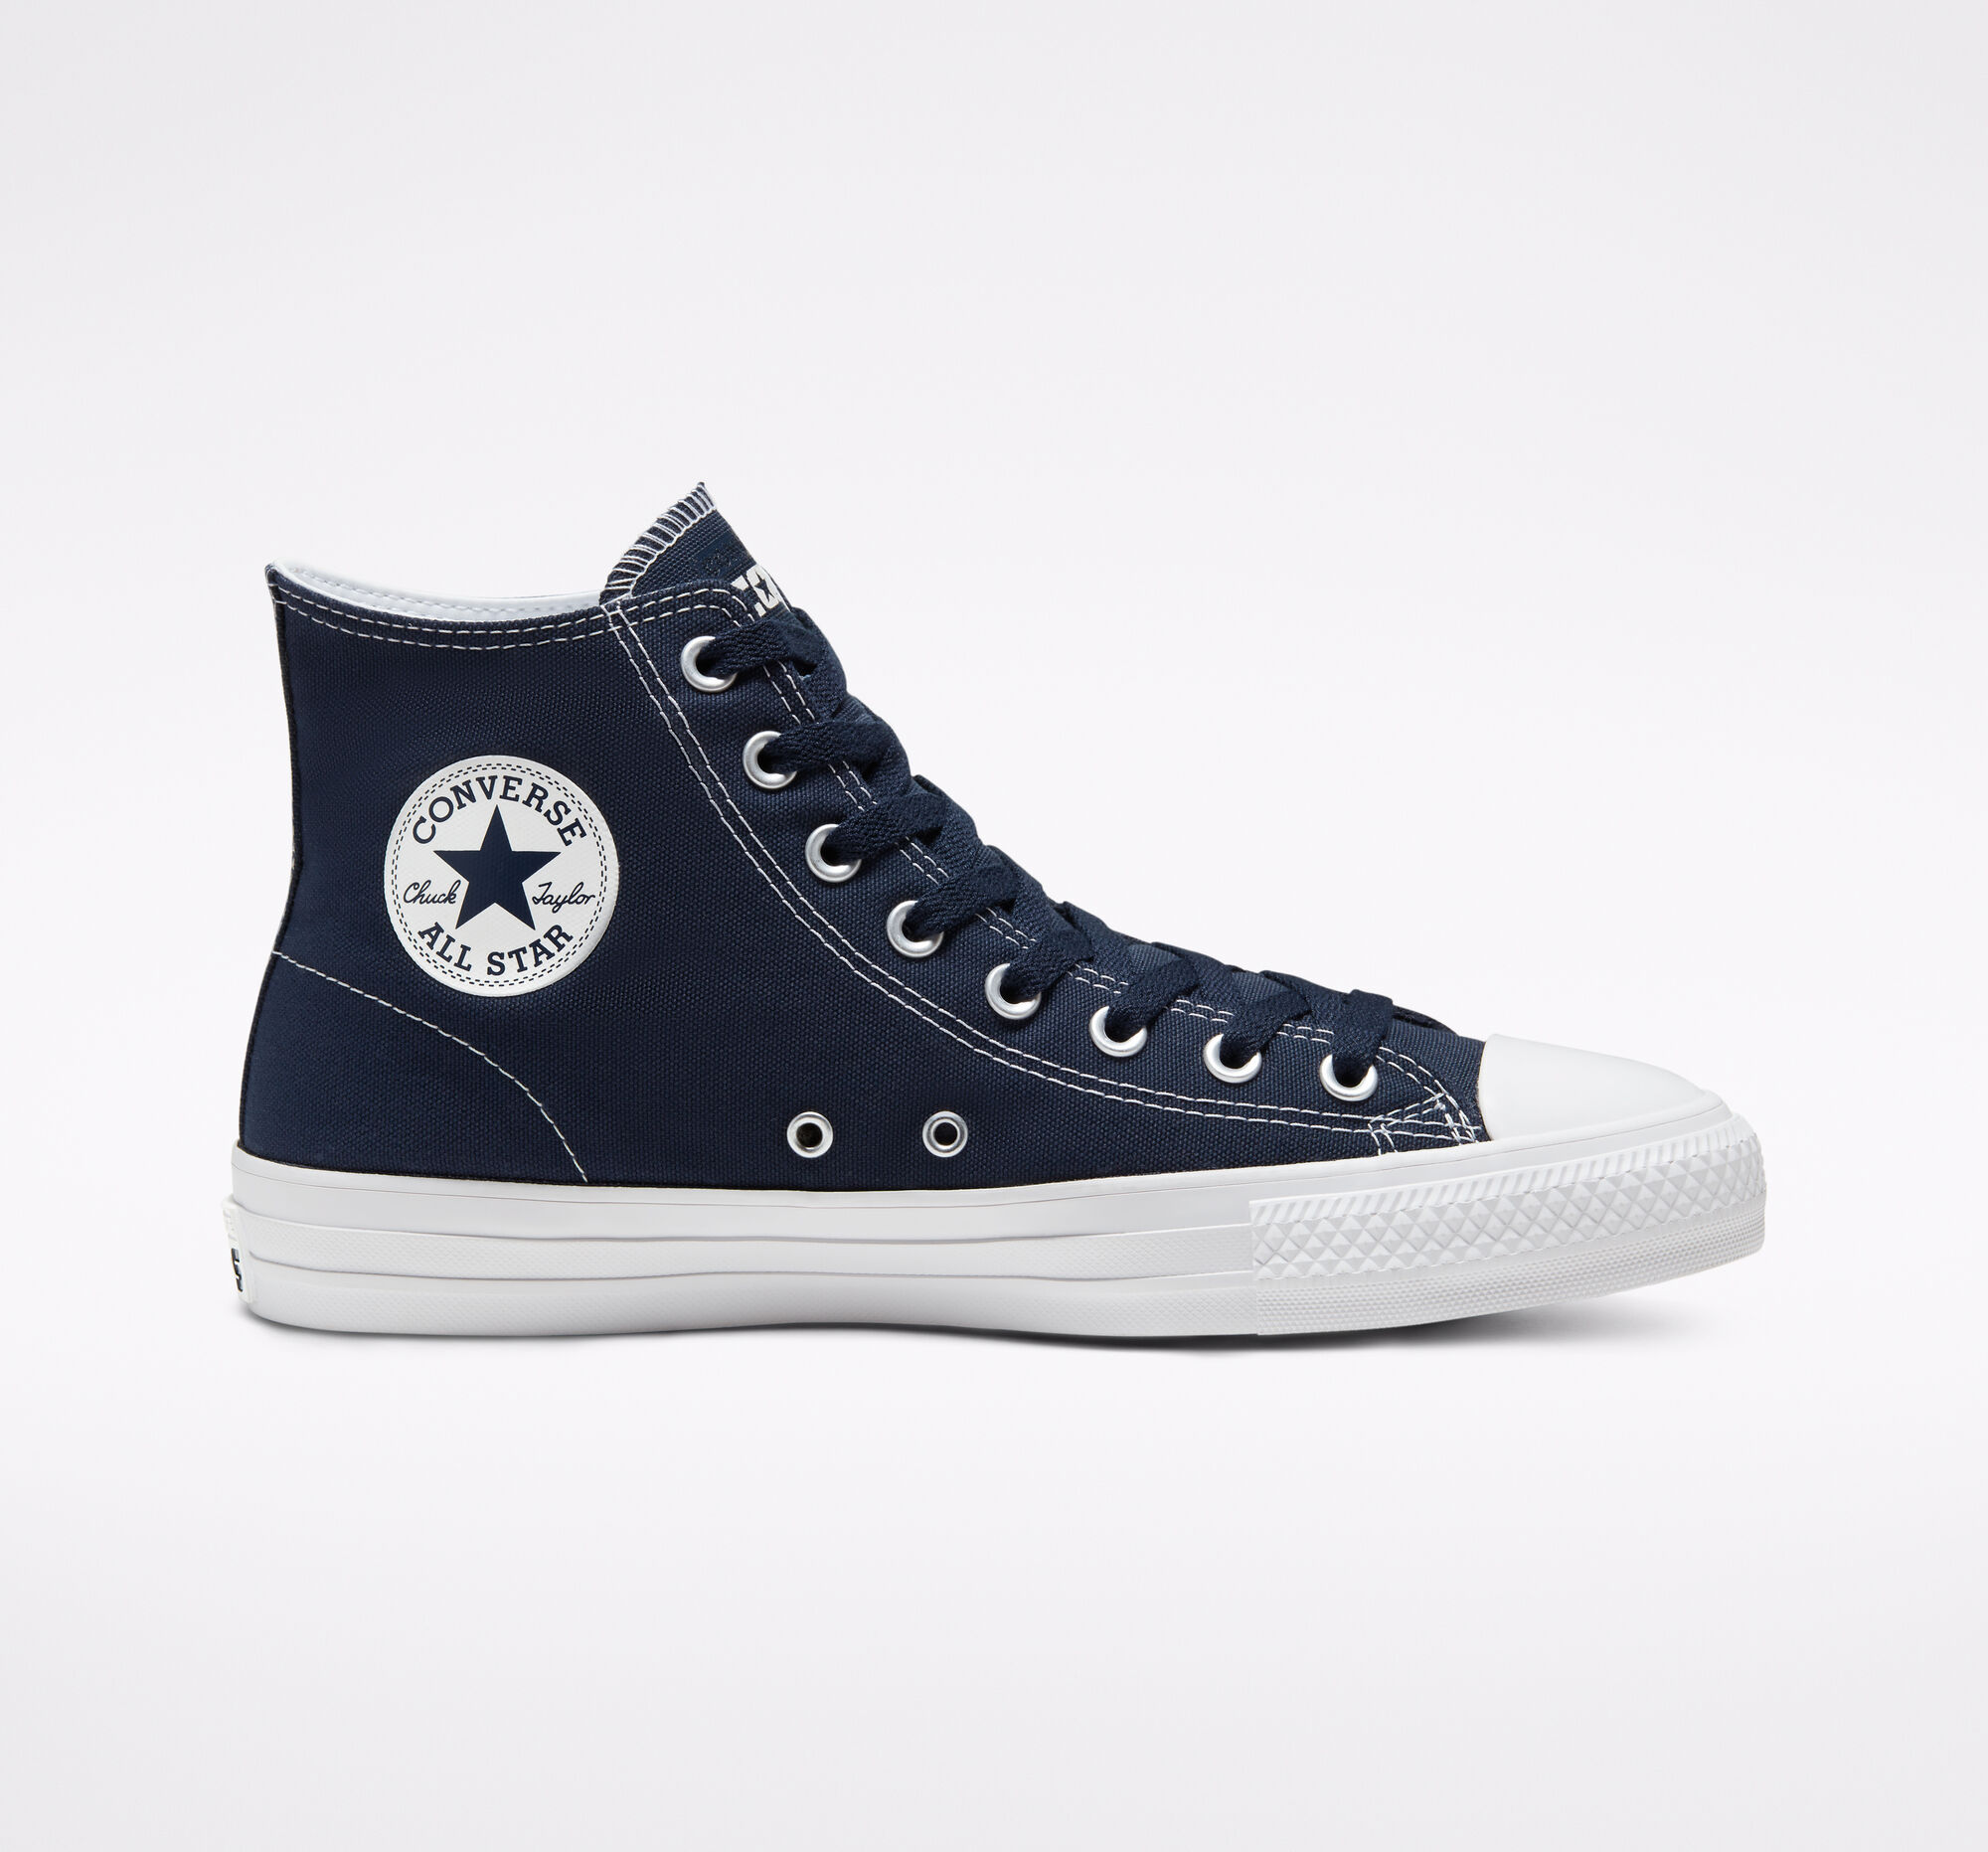 CONS CHUCK TAYLOR ALL STAR PRO